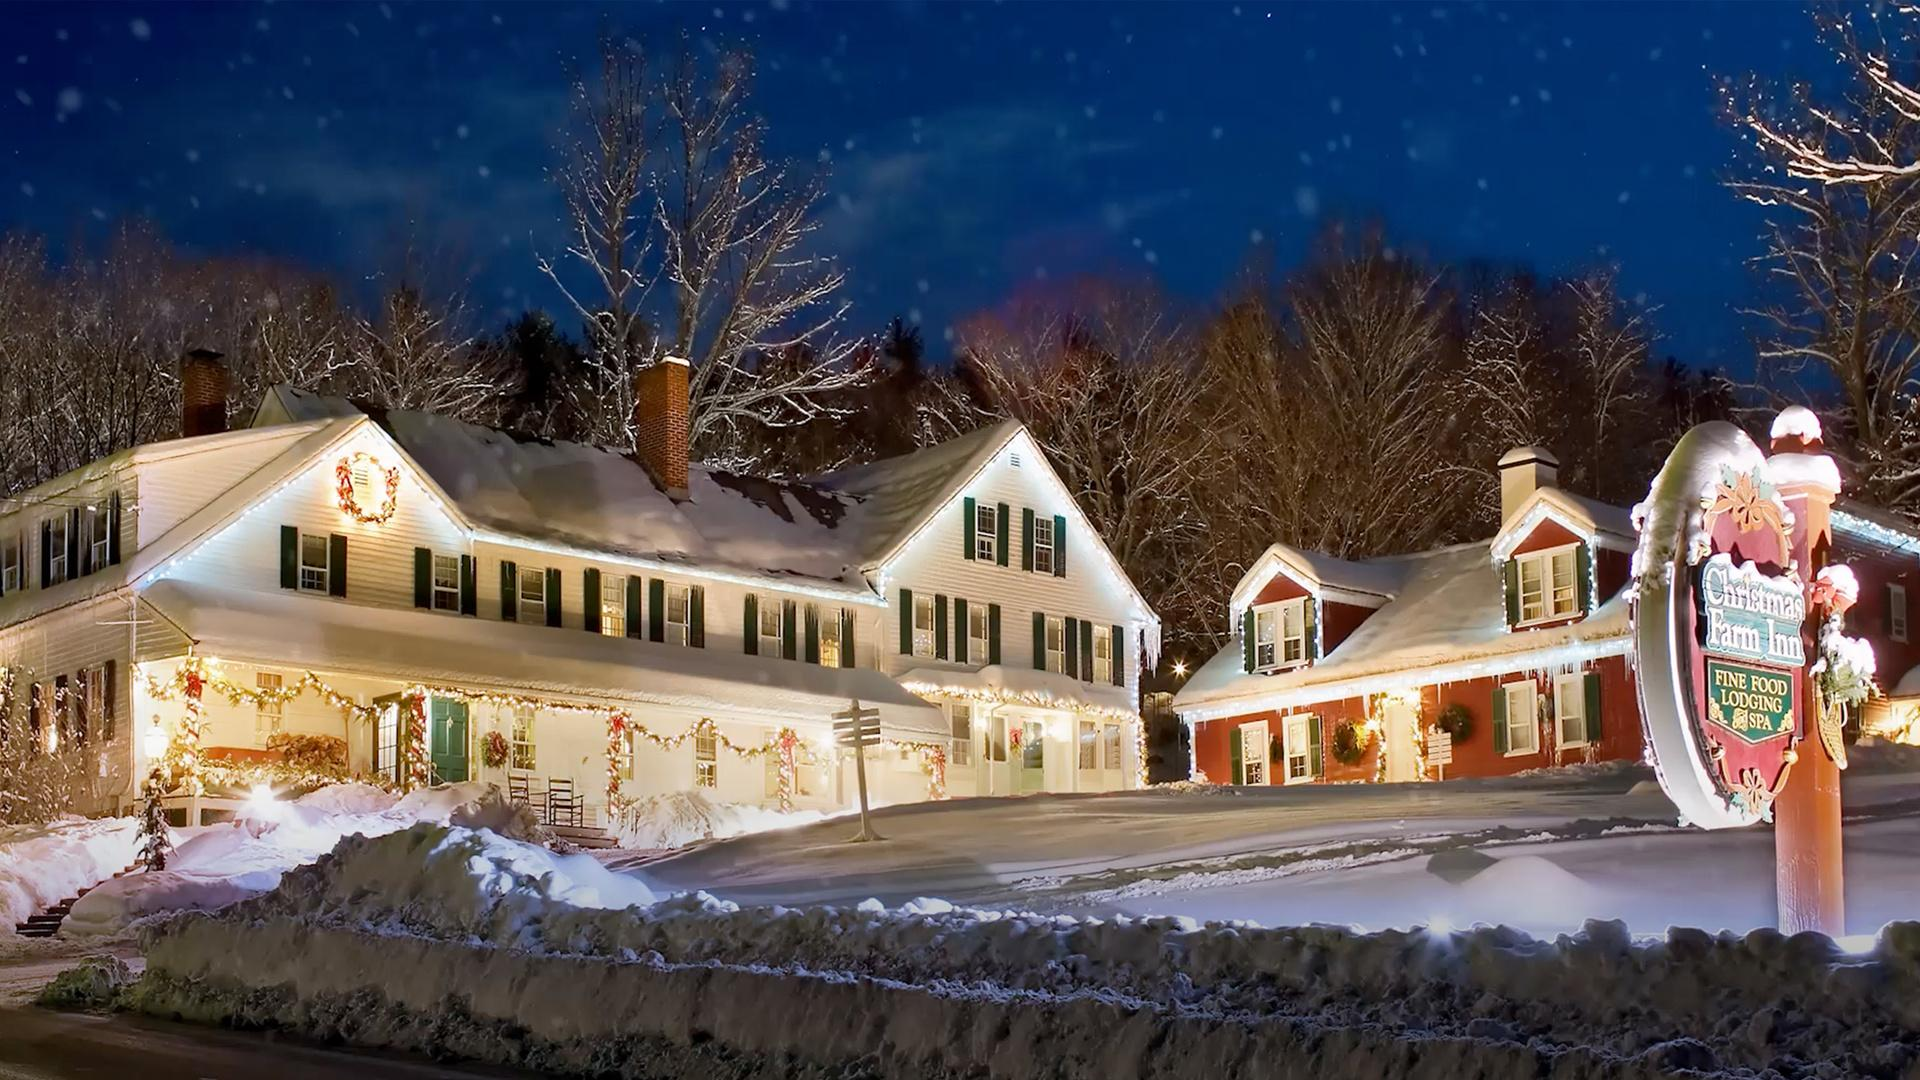 There's An Inn Where It's Christmas Year-Round